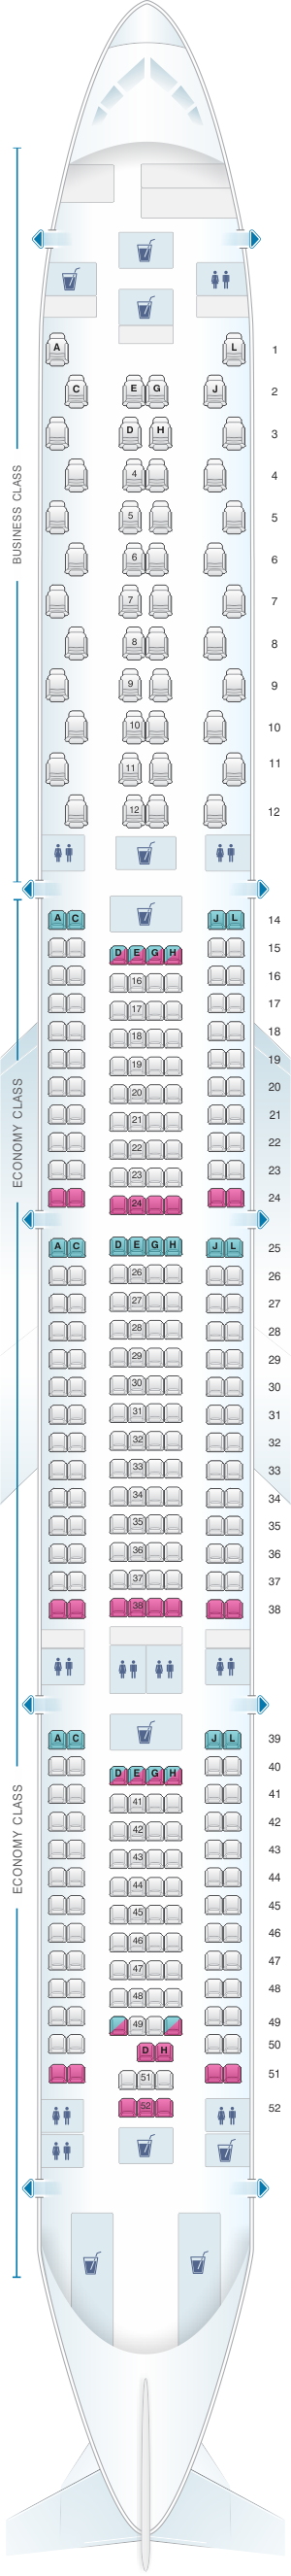 Seat map for Iberia Airbus A340 600 346pax